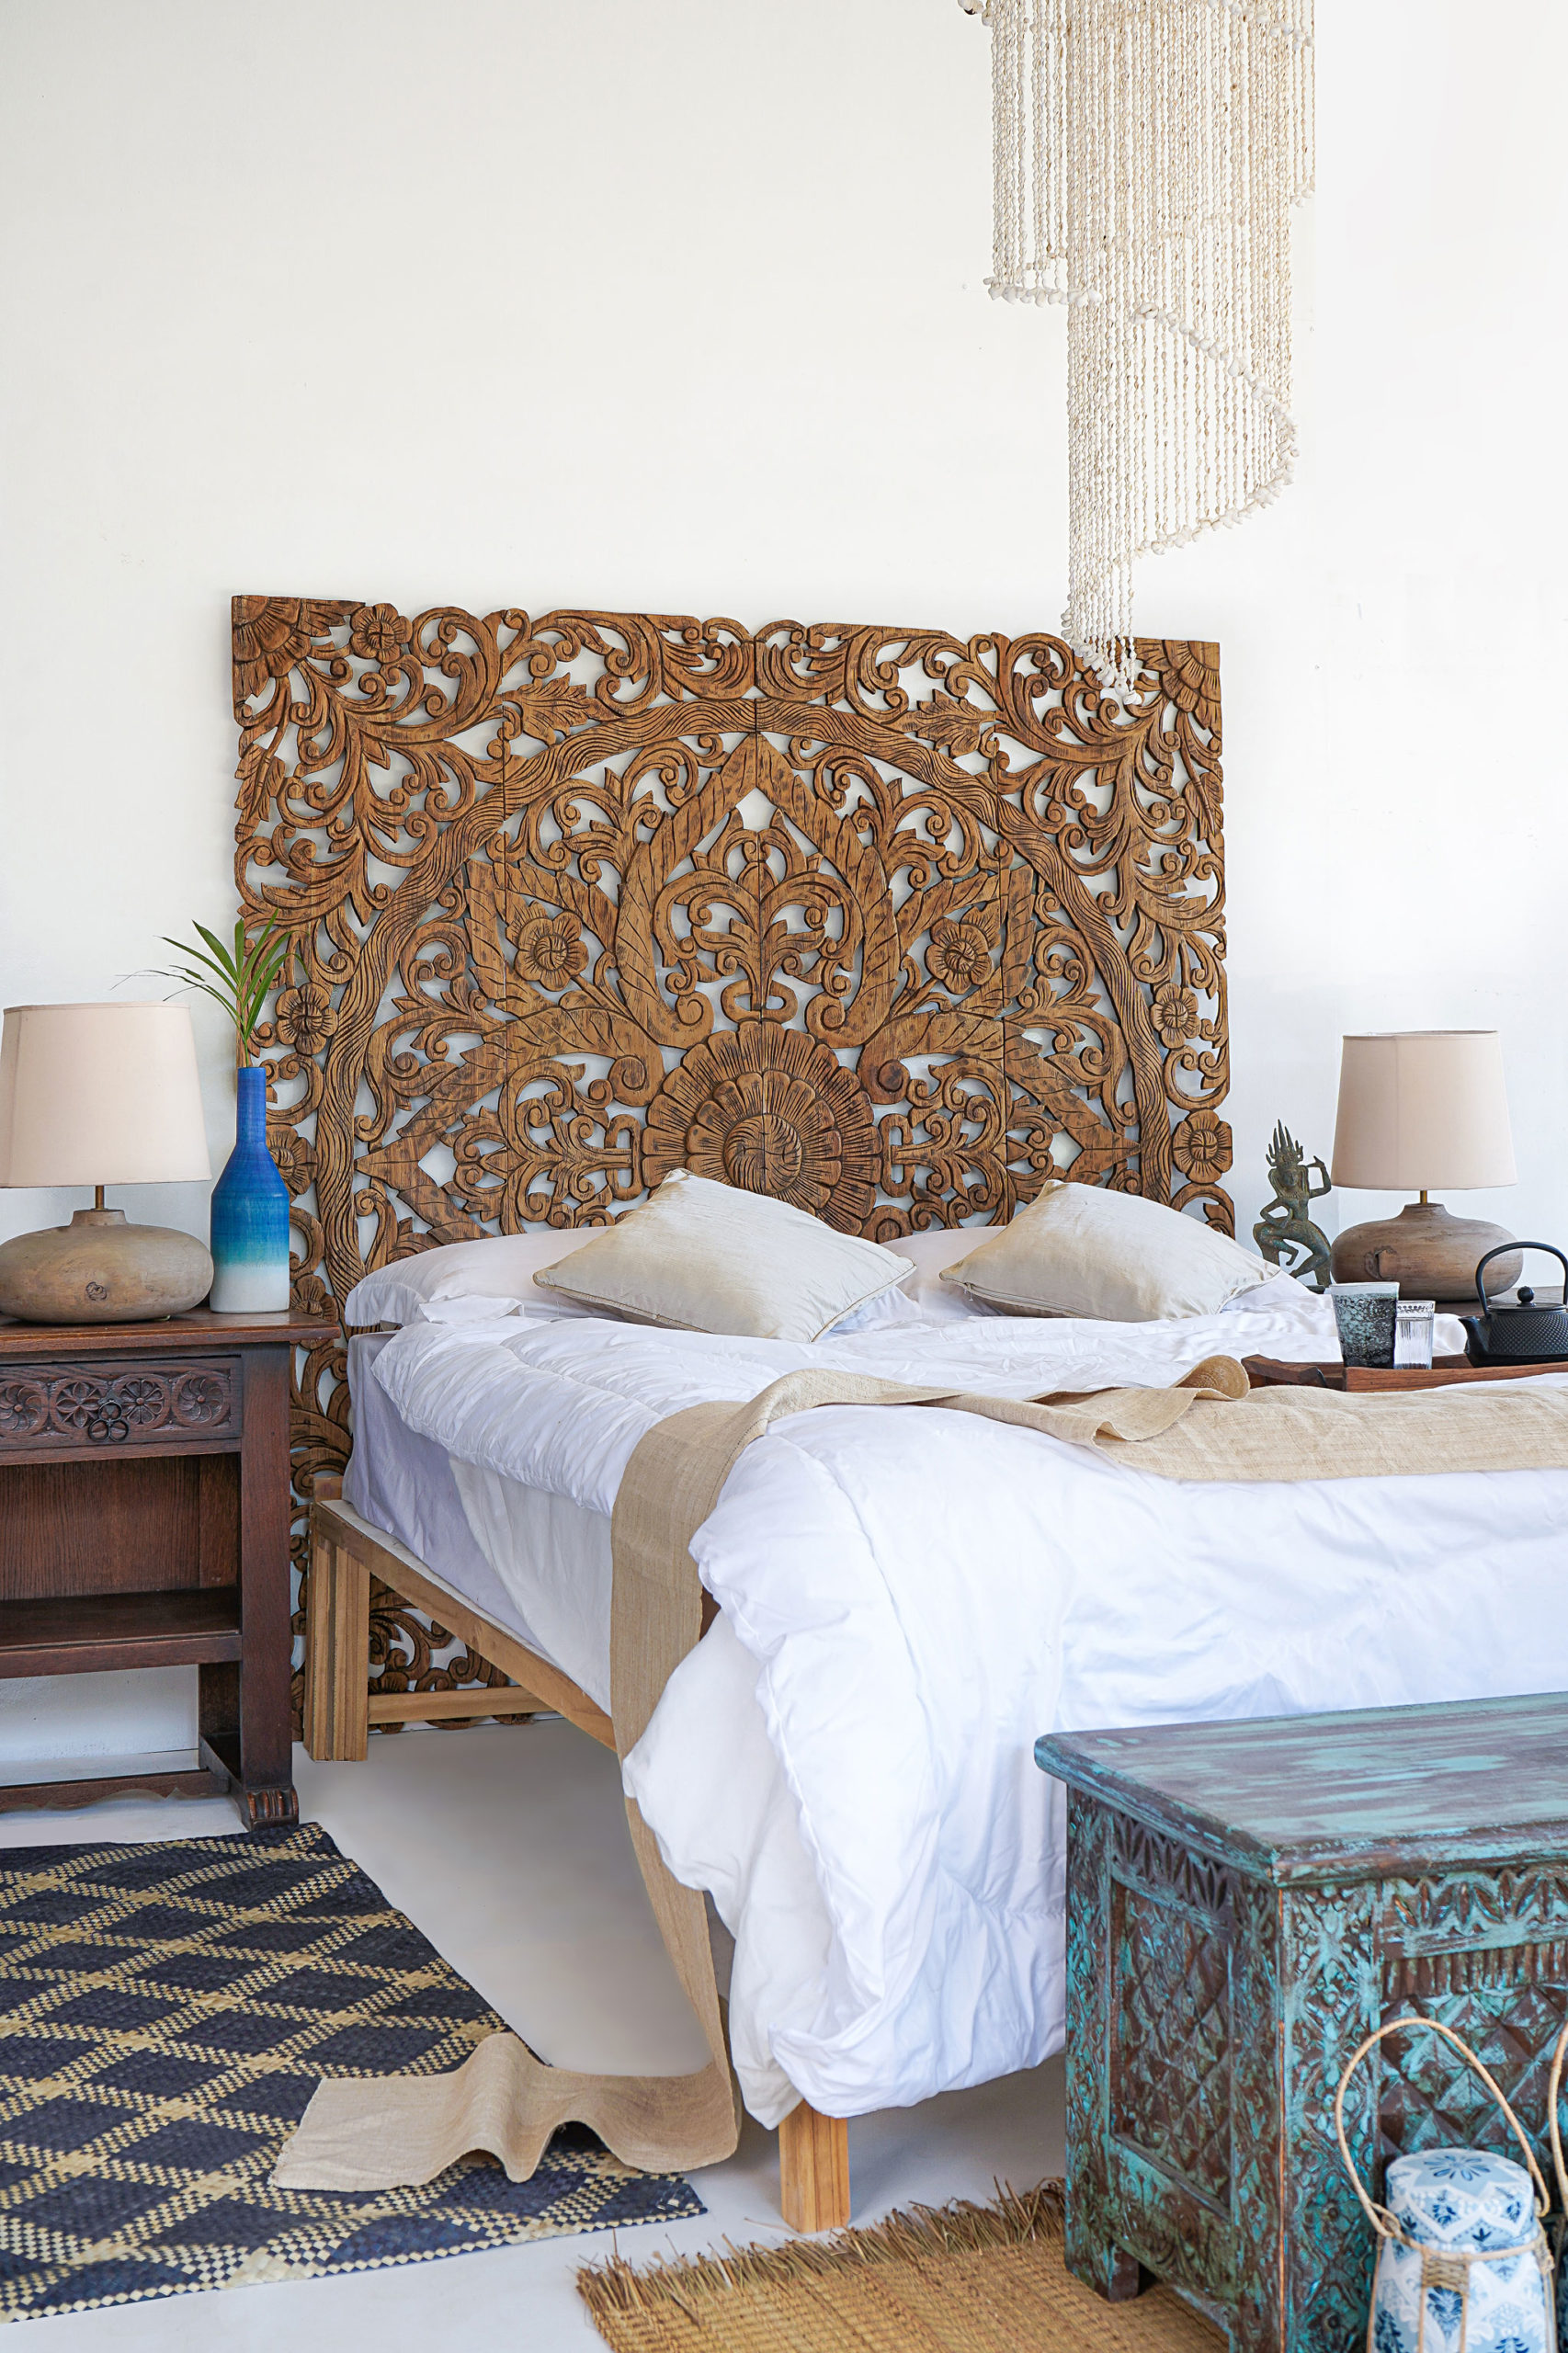 Picture of: Kingsize Headboard Balinese Wooden Panel In Boho Design